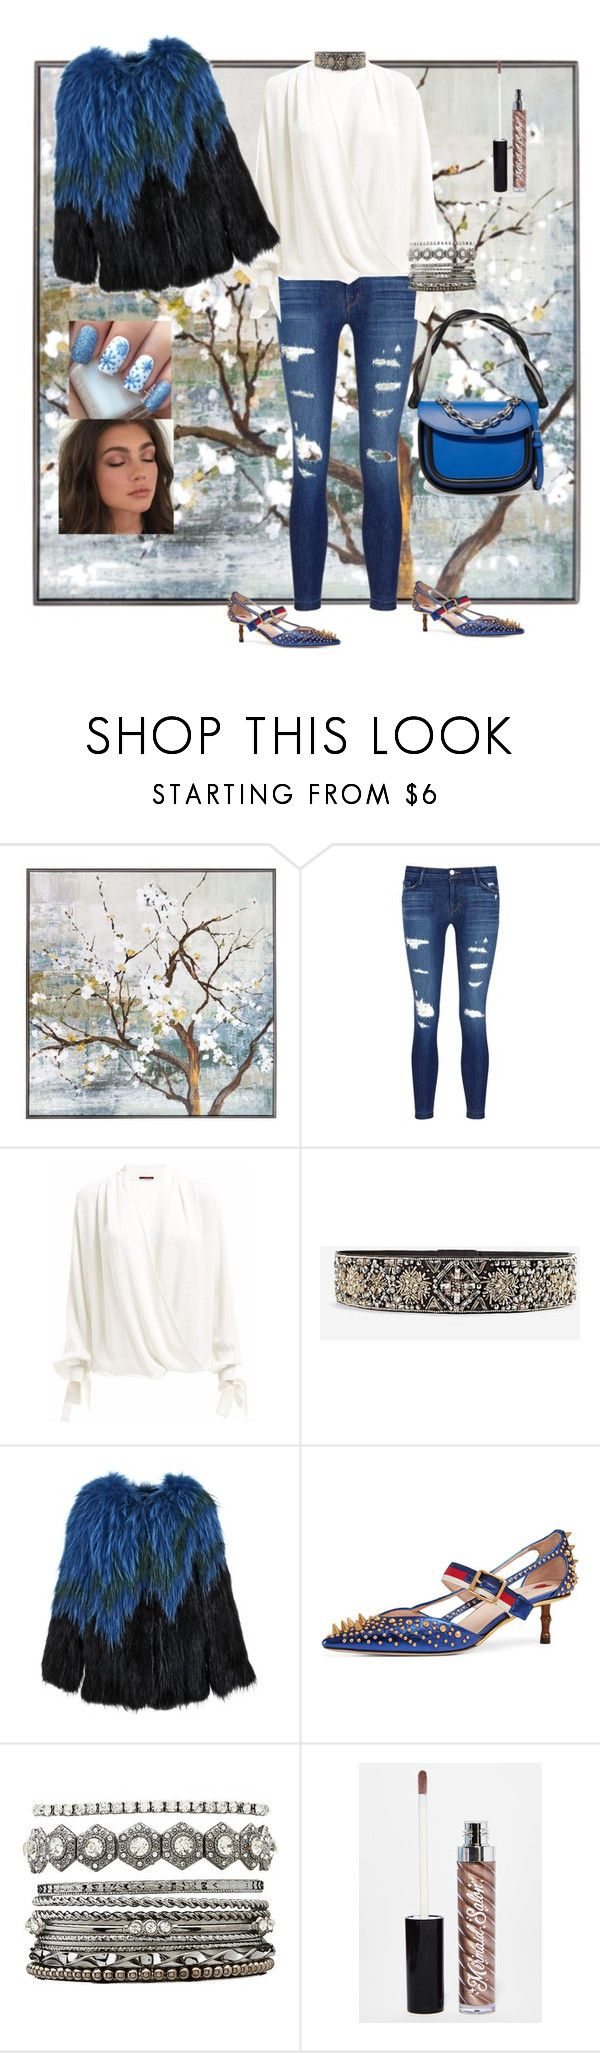 """💙🌺"" by zzhys ❤ liked on Polyvore featuring New View, J Brand, White House Black Market, Gucci, Charlotte Russe, Mermaid Salon and Marni"